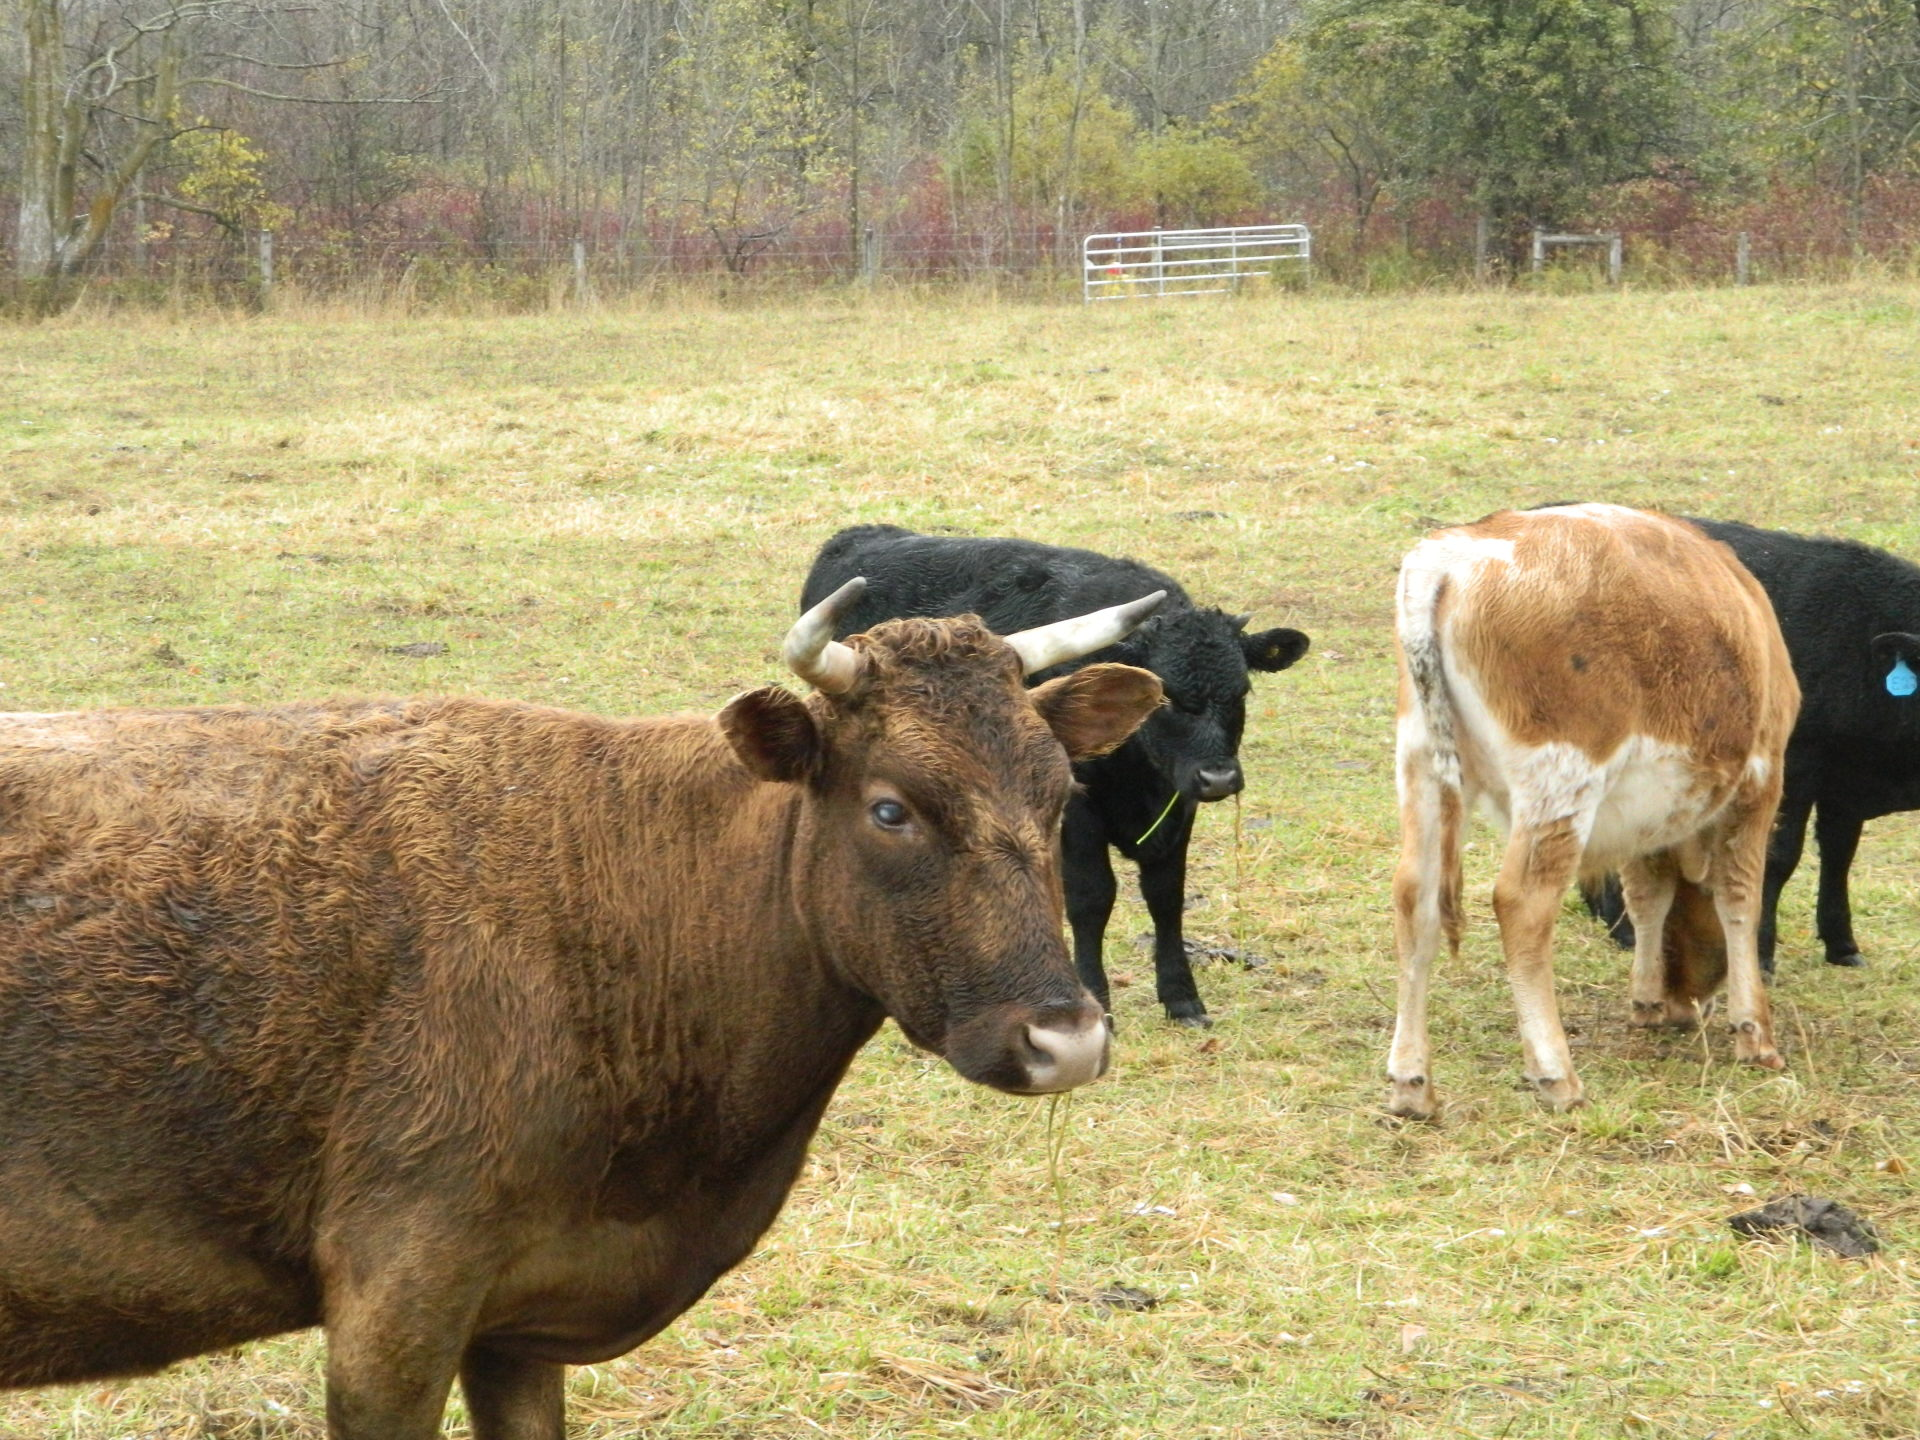 Grand opening of Cody's Cows farm store puts local farm